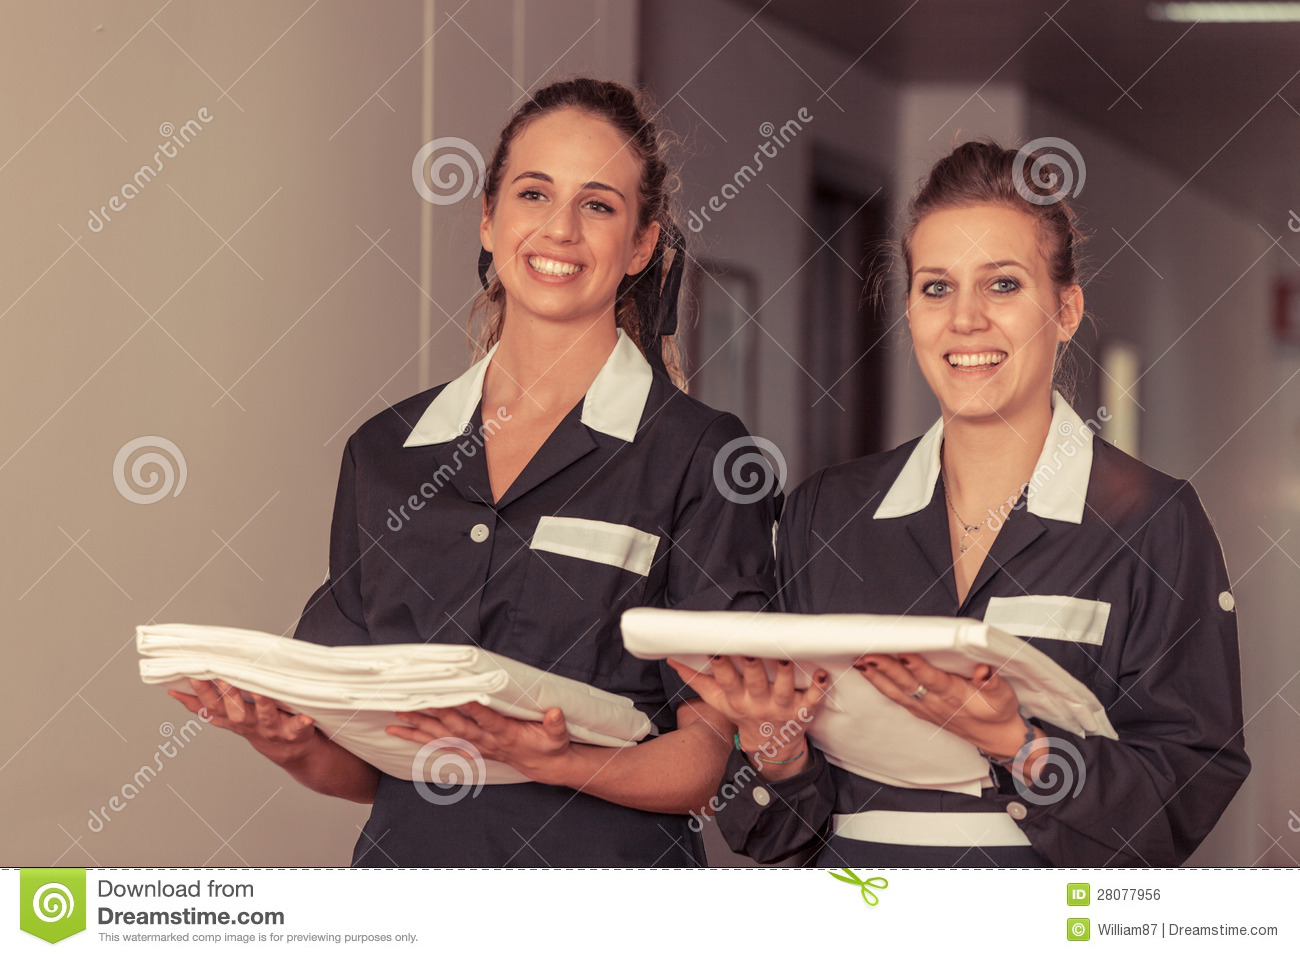 Chamber maids royalty free stock image image 28077956 - Planning femme de chambre ...